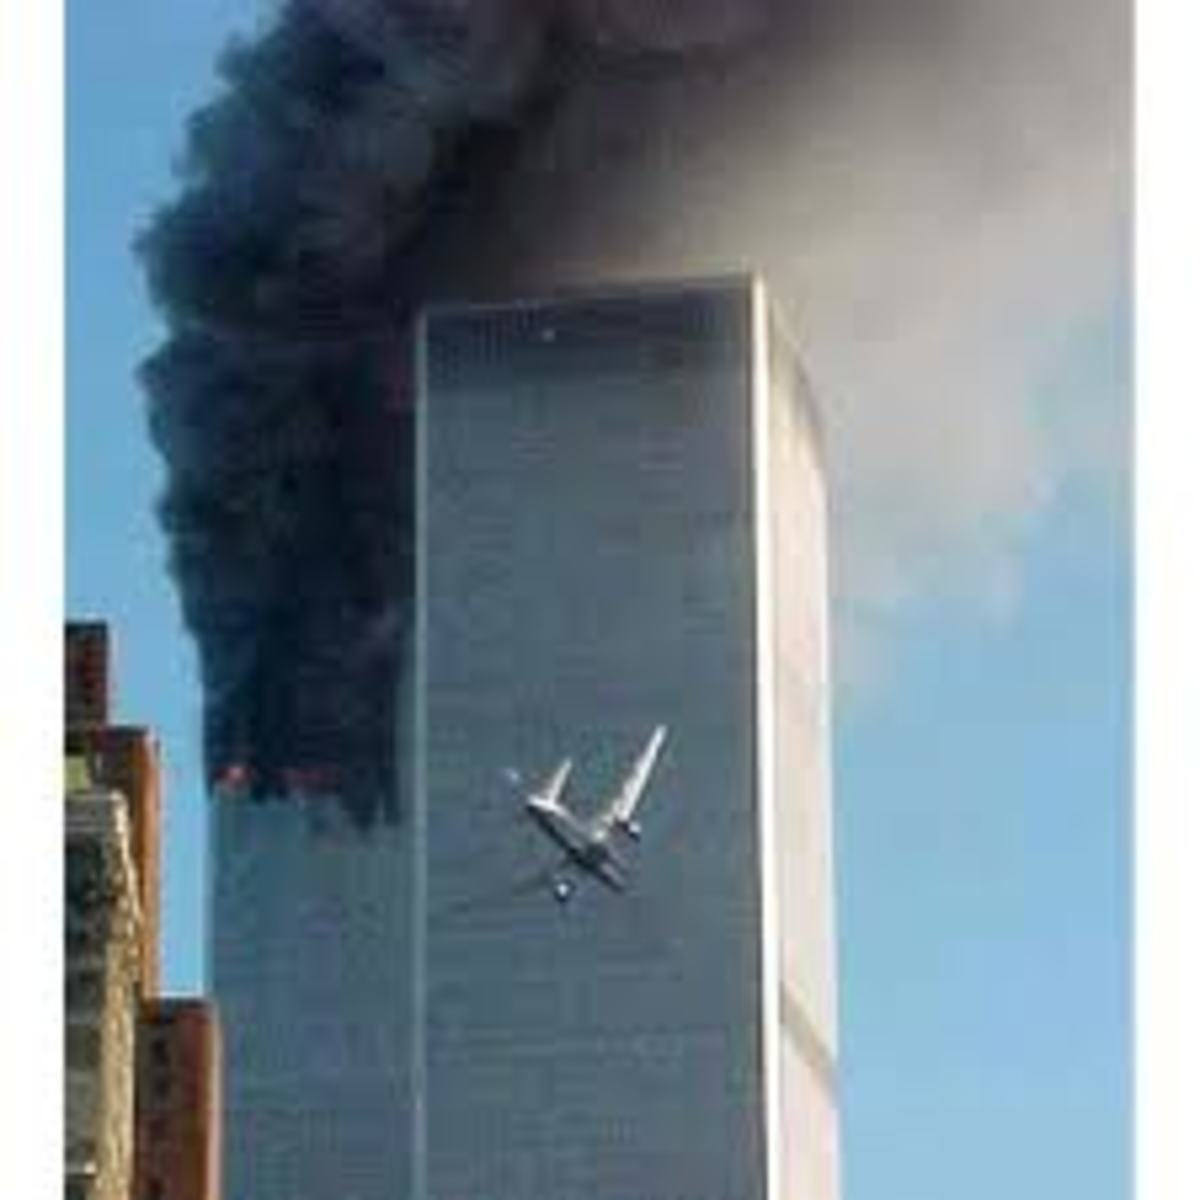 The moment before impact on the second tower, this terrorist act has changed the world for the worst, because America had to defend her own, wars have been fought and we seem to be worse off. Changes are required to stop the fanatics.